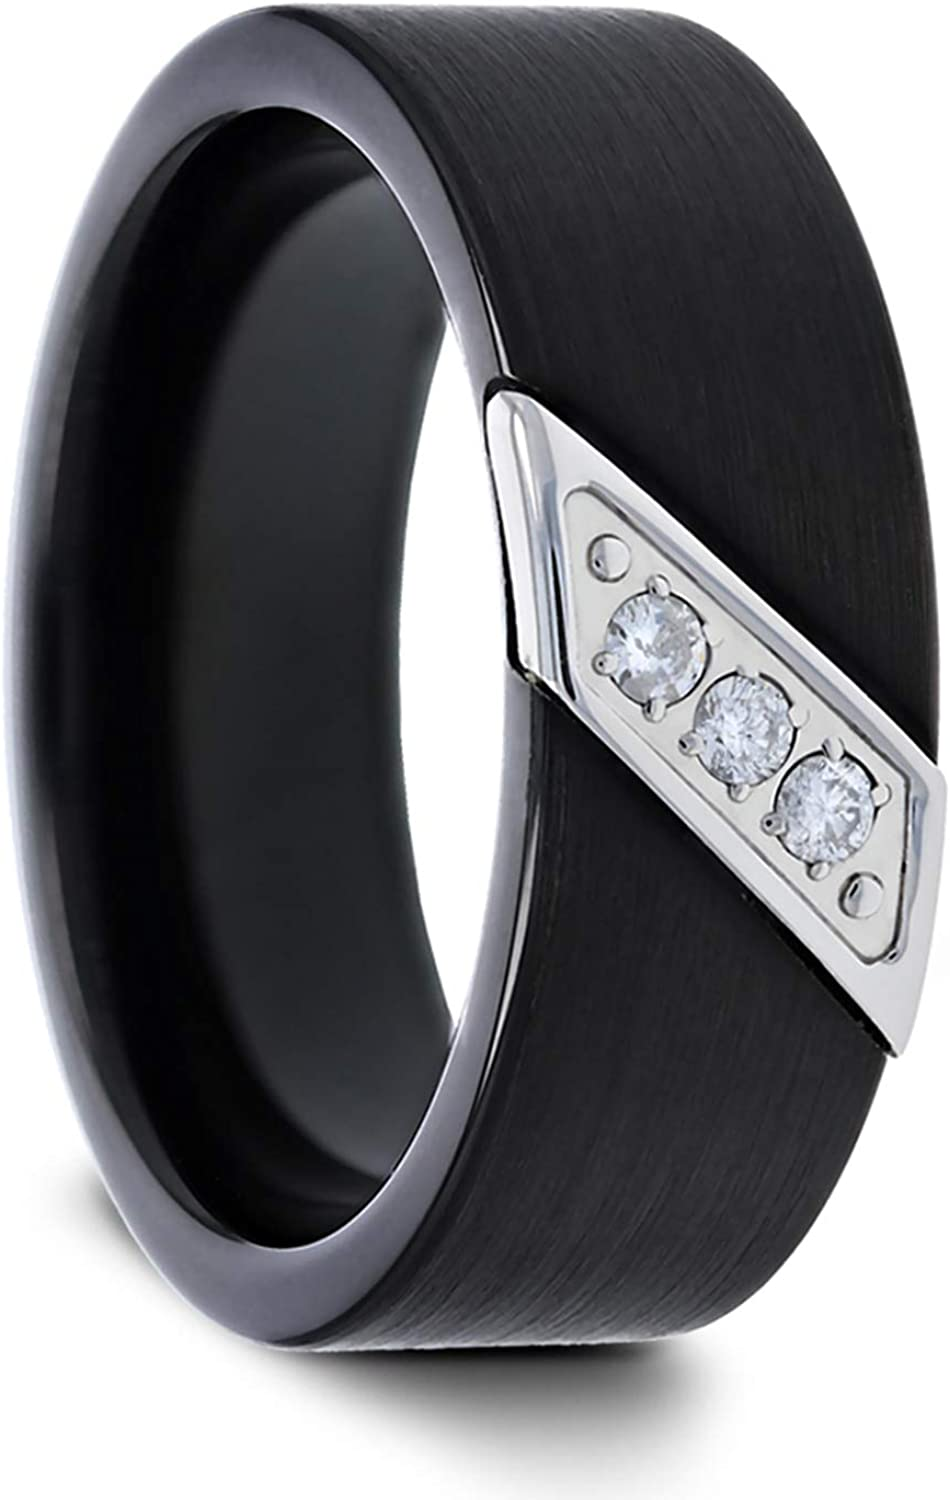 Liam Flat Black Satin Finished Tungsten Carbide Wedding Band with Diagonal Diamonds Set in Stainless Steel - 8 mm (10.5)